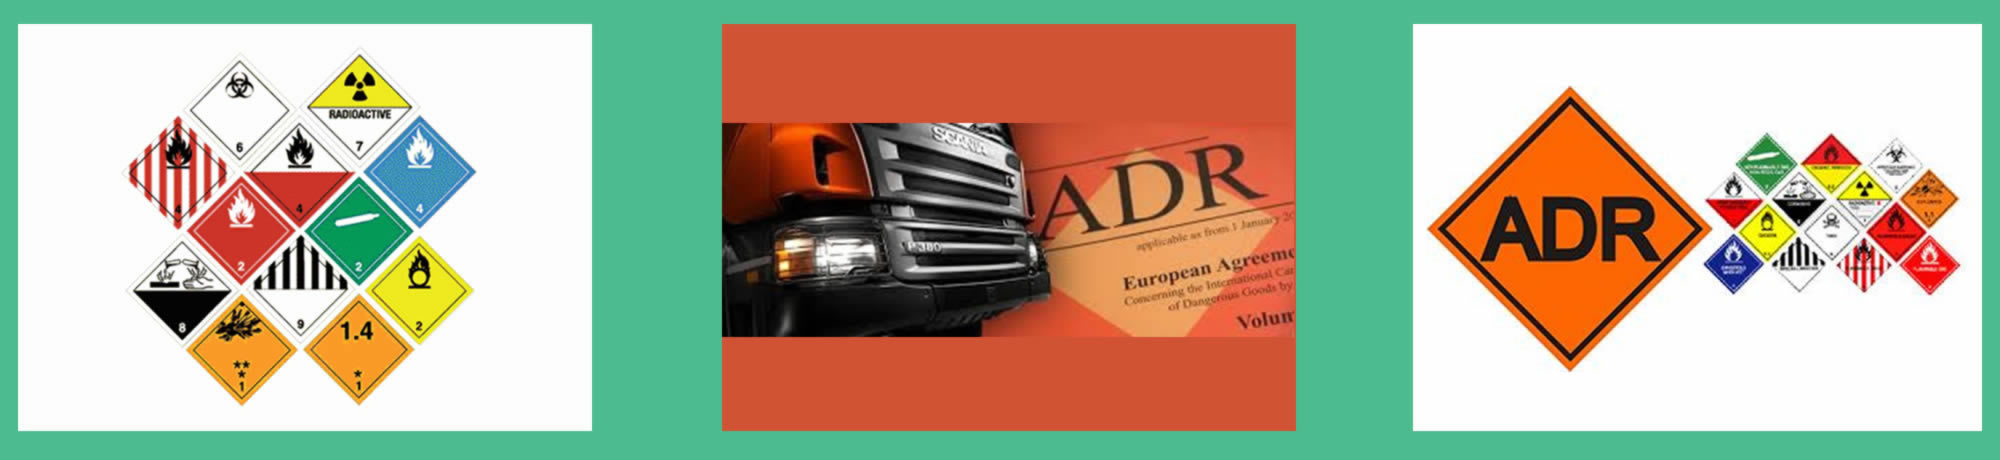 ADR Training and Certification